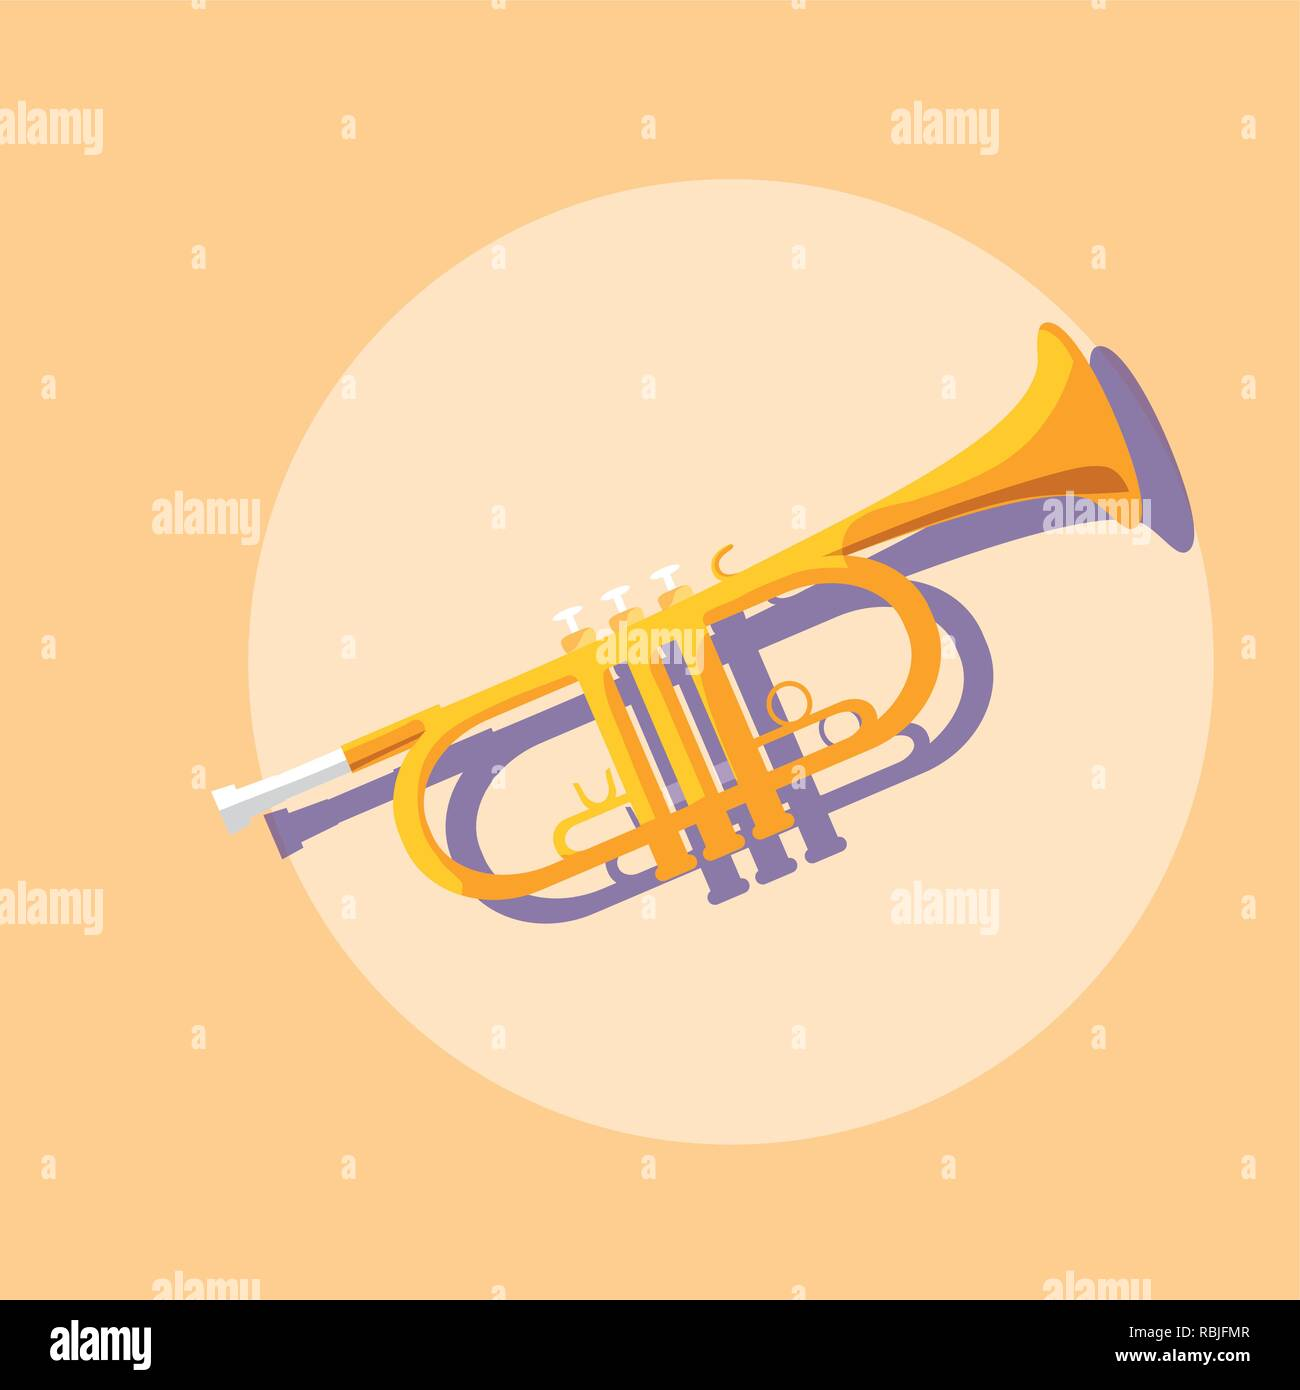 trumpet musical instrument icon vector illustration design - Stock Vector